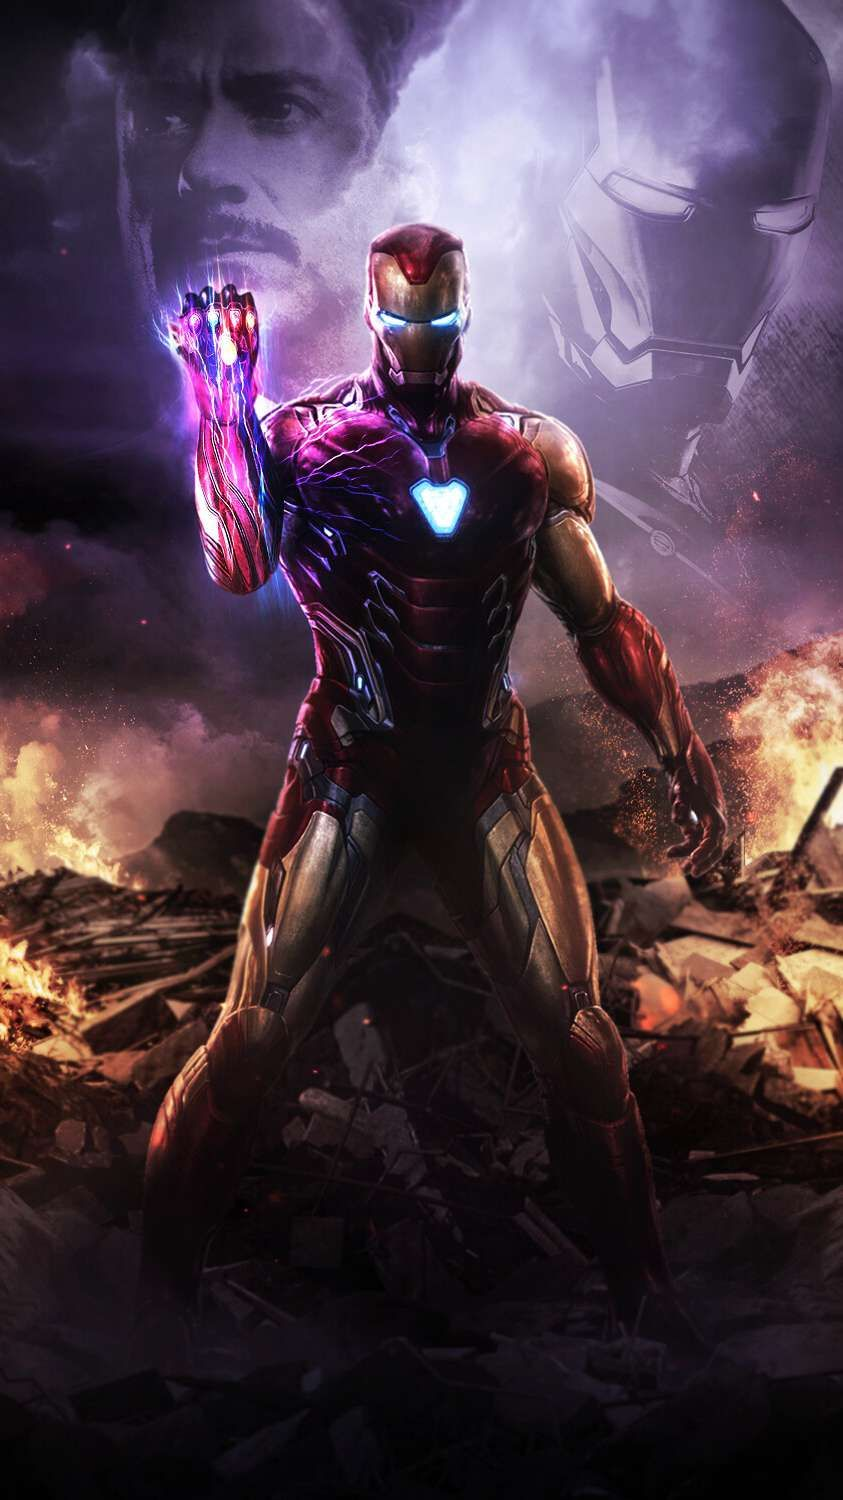 Iphone Wallpapers For Iphone 8 Iphone 8 Plus Iphone 6s Iphone 6s Plus Iphone X And Ipod In 2021 Marvel Superhero Posters Iron Man Wallpaper Marvel Iphone Wallpaper Get inspired for iron man hd wallpaper